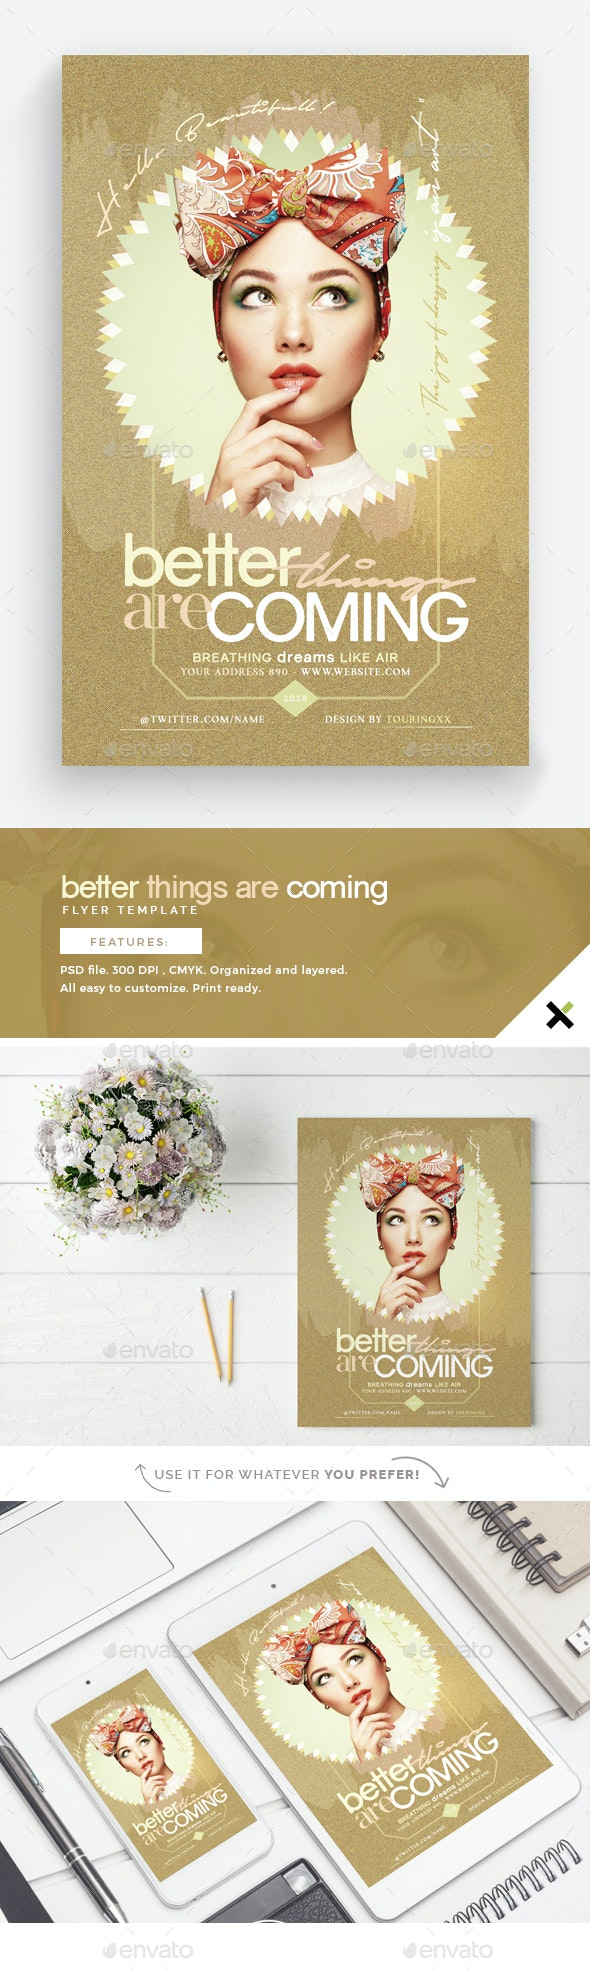 Better Things Are Coming Flyer Template - Flyers Print Templates